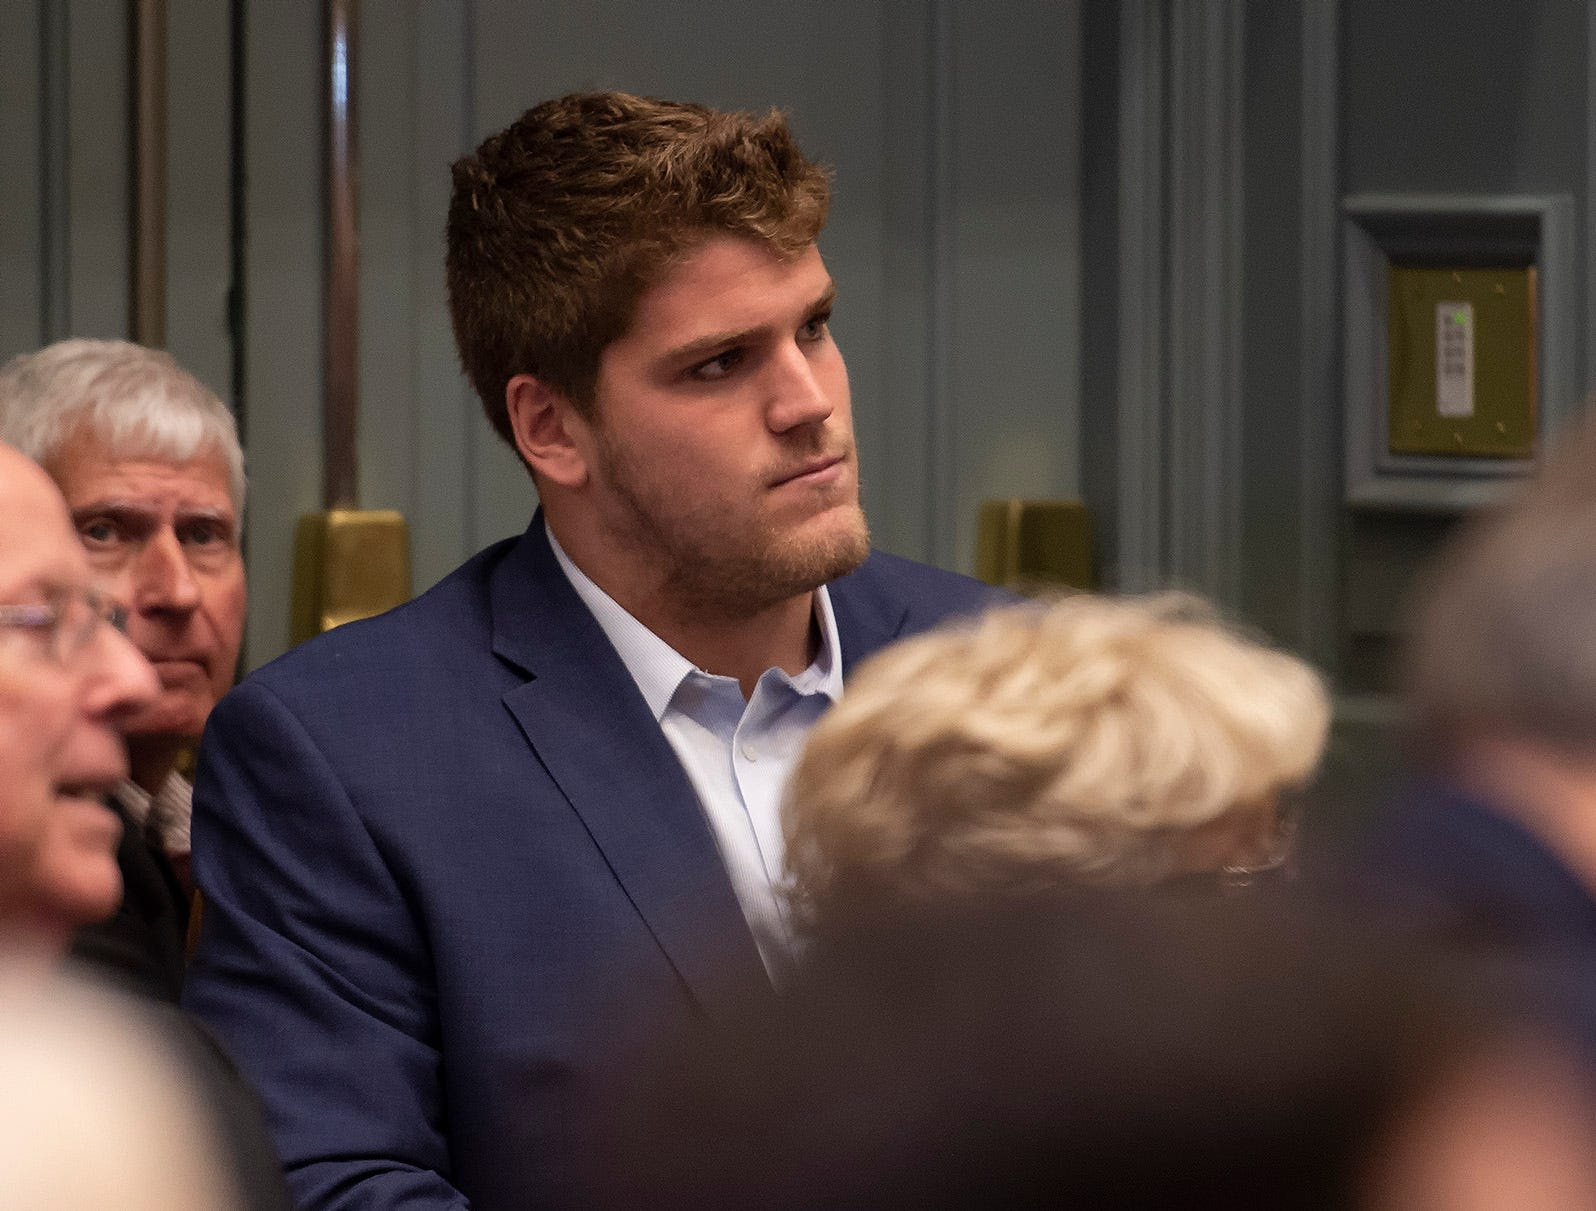 Brian O'Neill, a rookie with the Minnesota Vikings, and nephew of Governor John Carney in attendance during the  State of the State Address in the Senate Chambers.